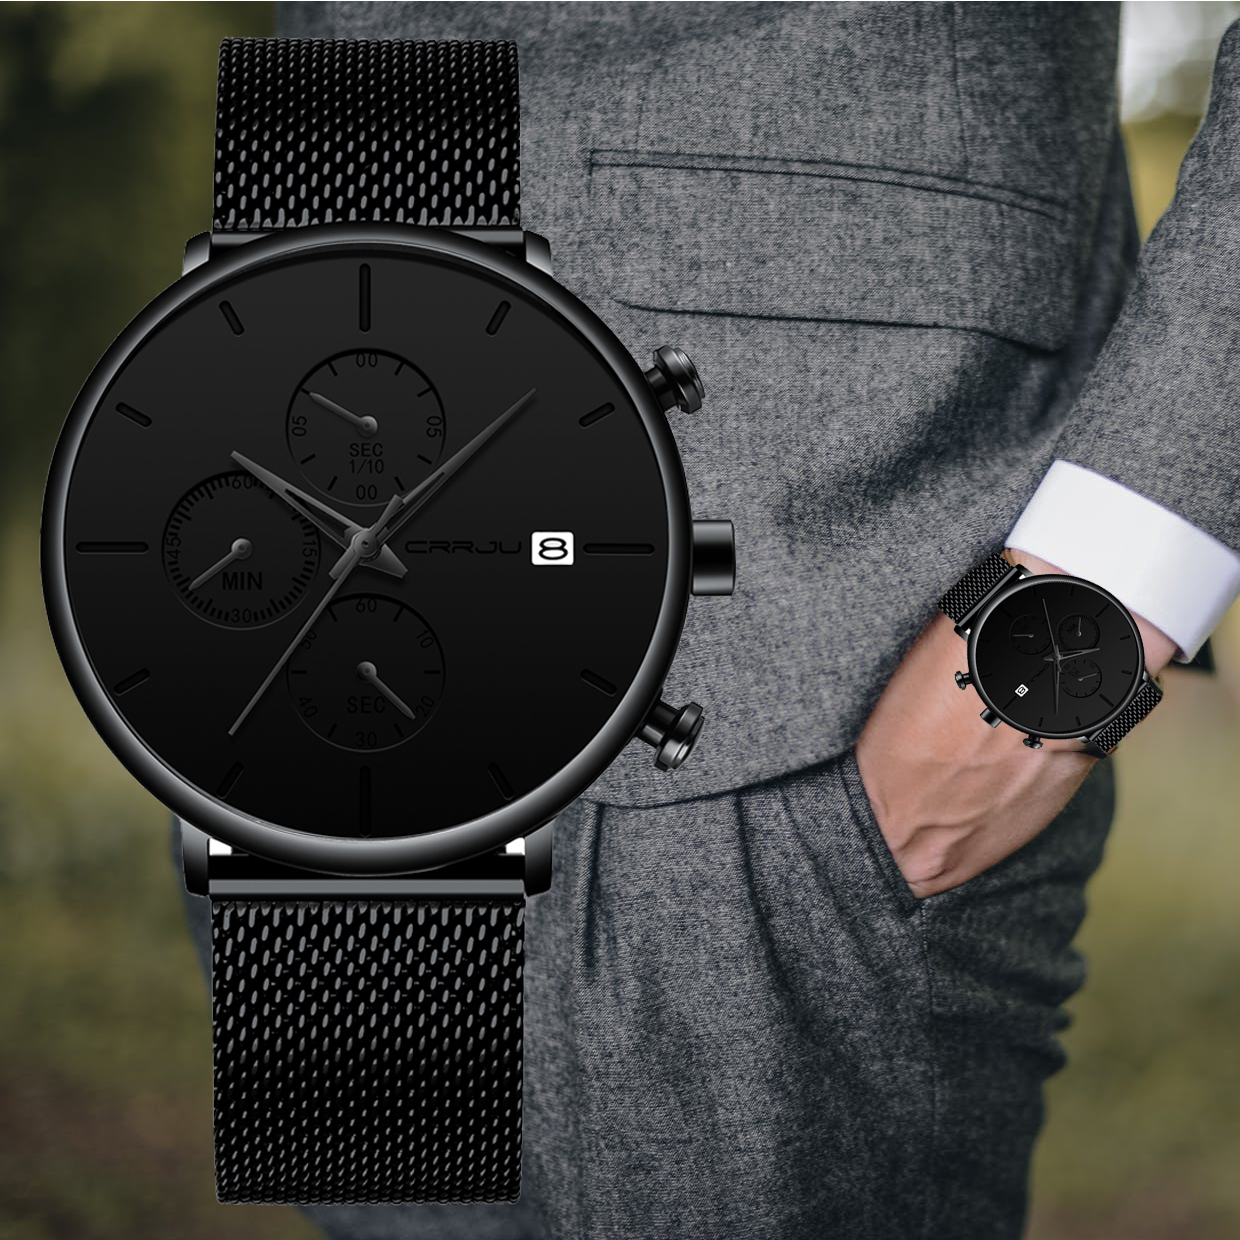 Luxury Brand CRRJU Men Watch 2019 New Minimalist Multi-function Chronograph Waterproof Mesh Wristwatch With Date Display